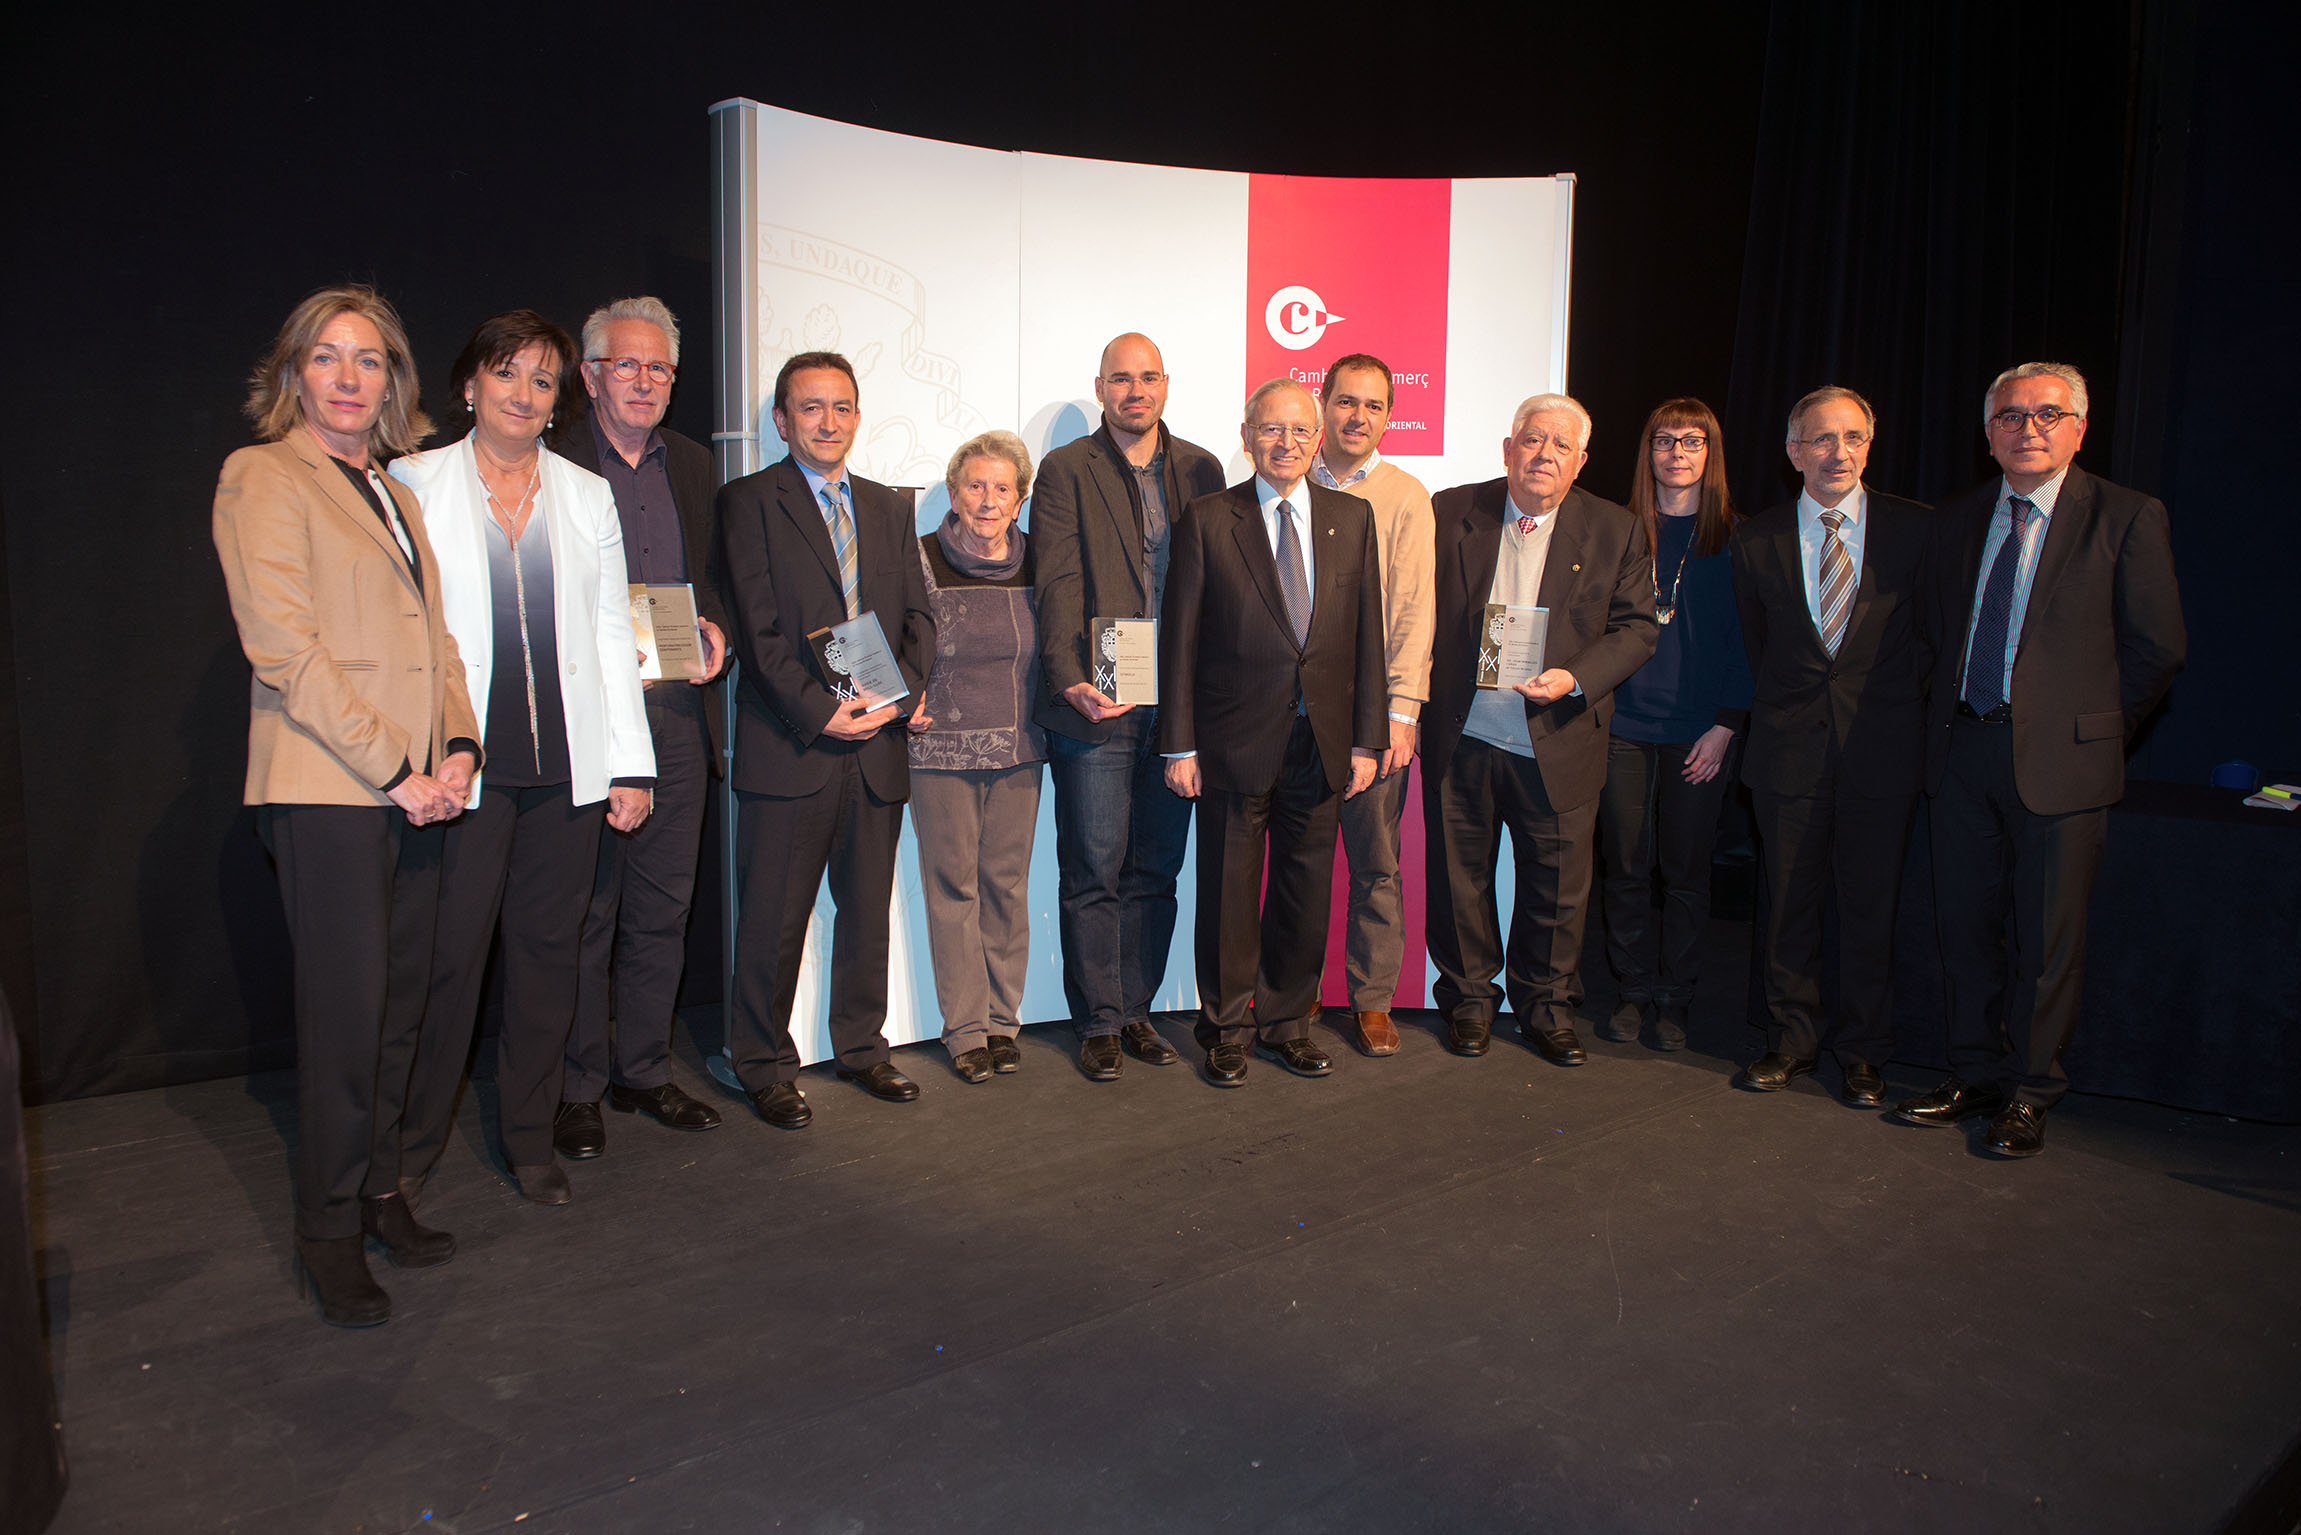 stimulo-receiving-award-barcelona-chamber-of-commerce